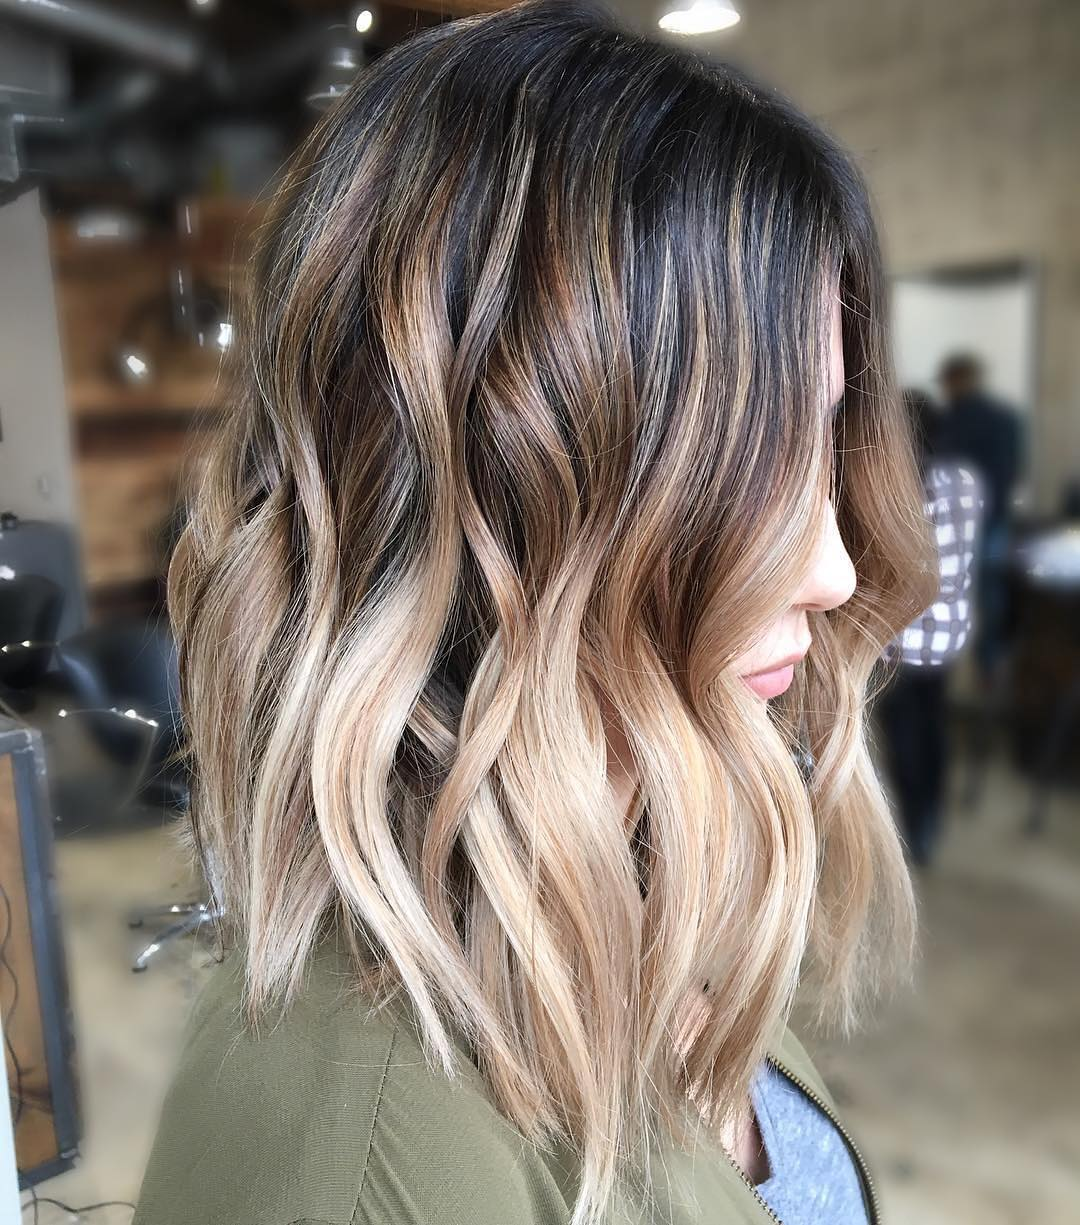 10 balayage ombre hair styles for shoulder length hair women haircut 2019. Black Bedroom Furniture Sets. Home Design Ideas